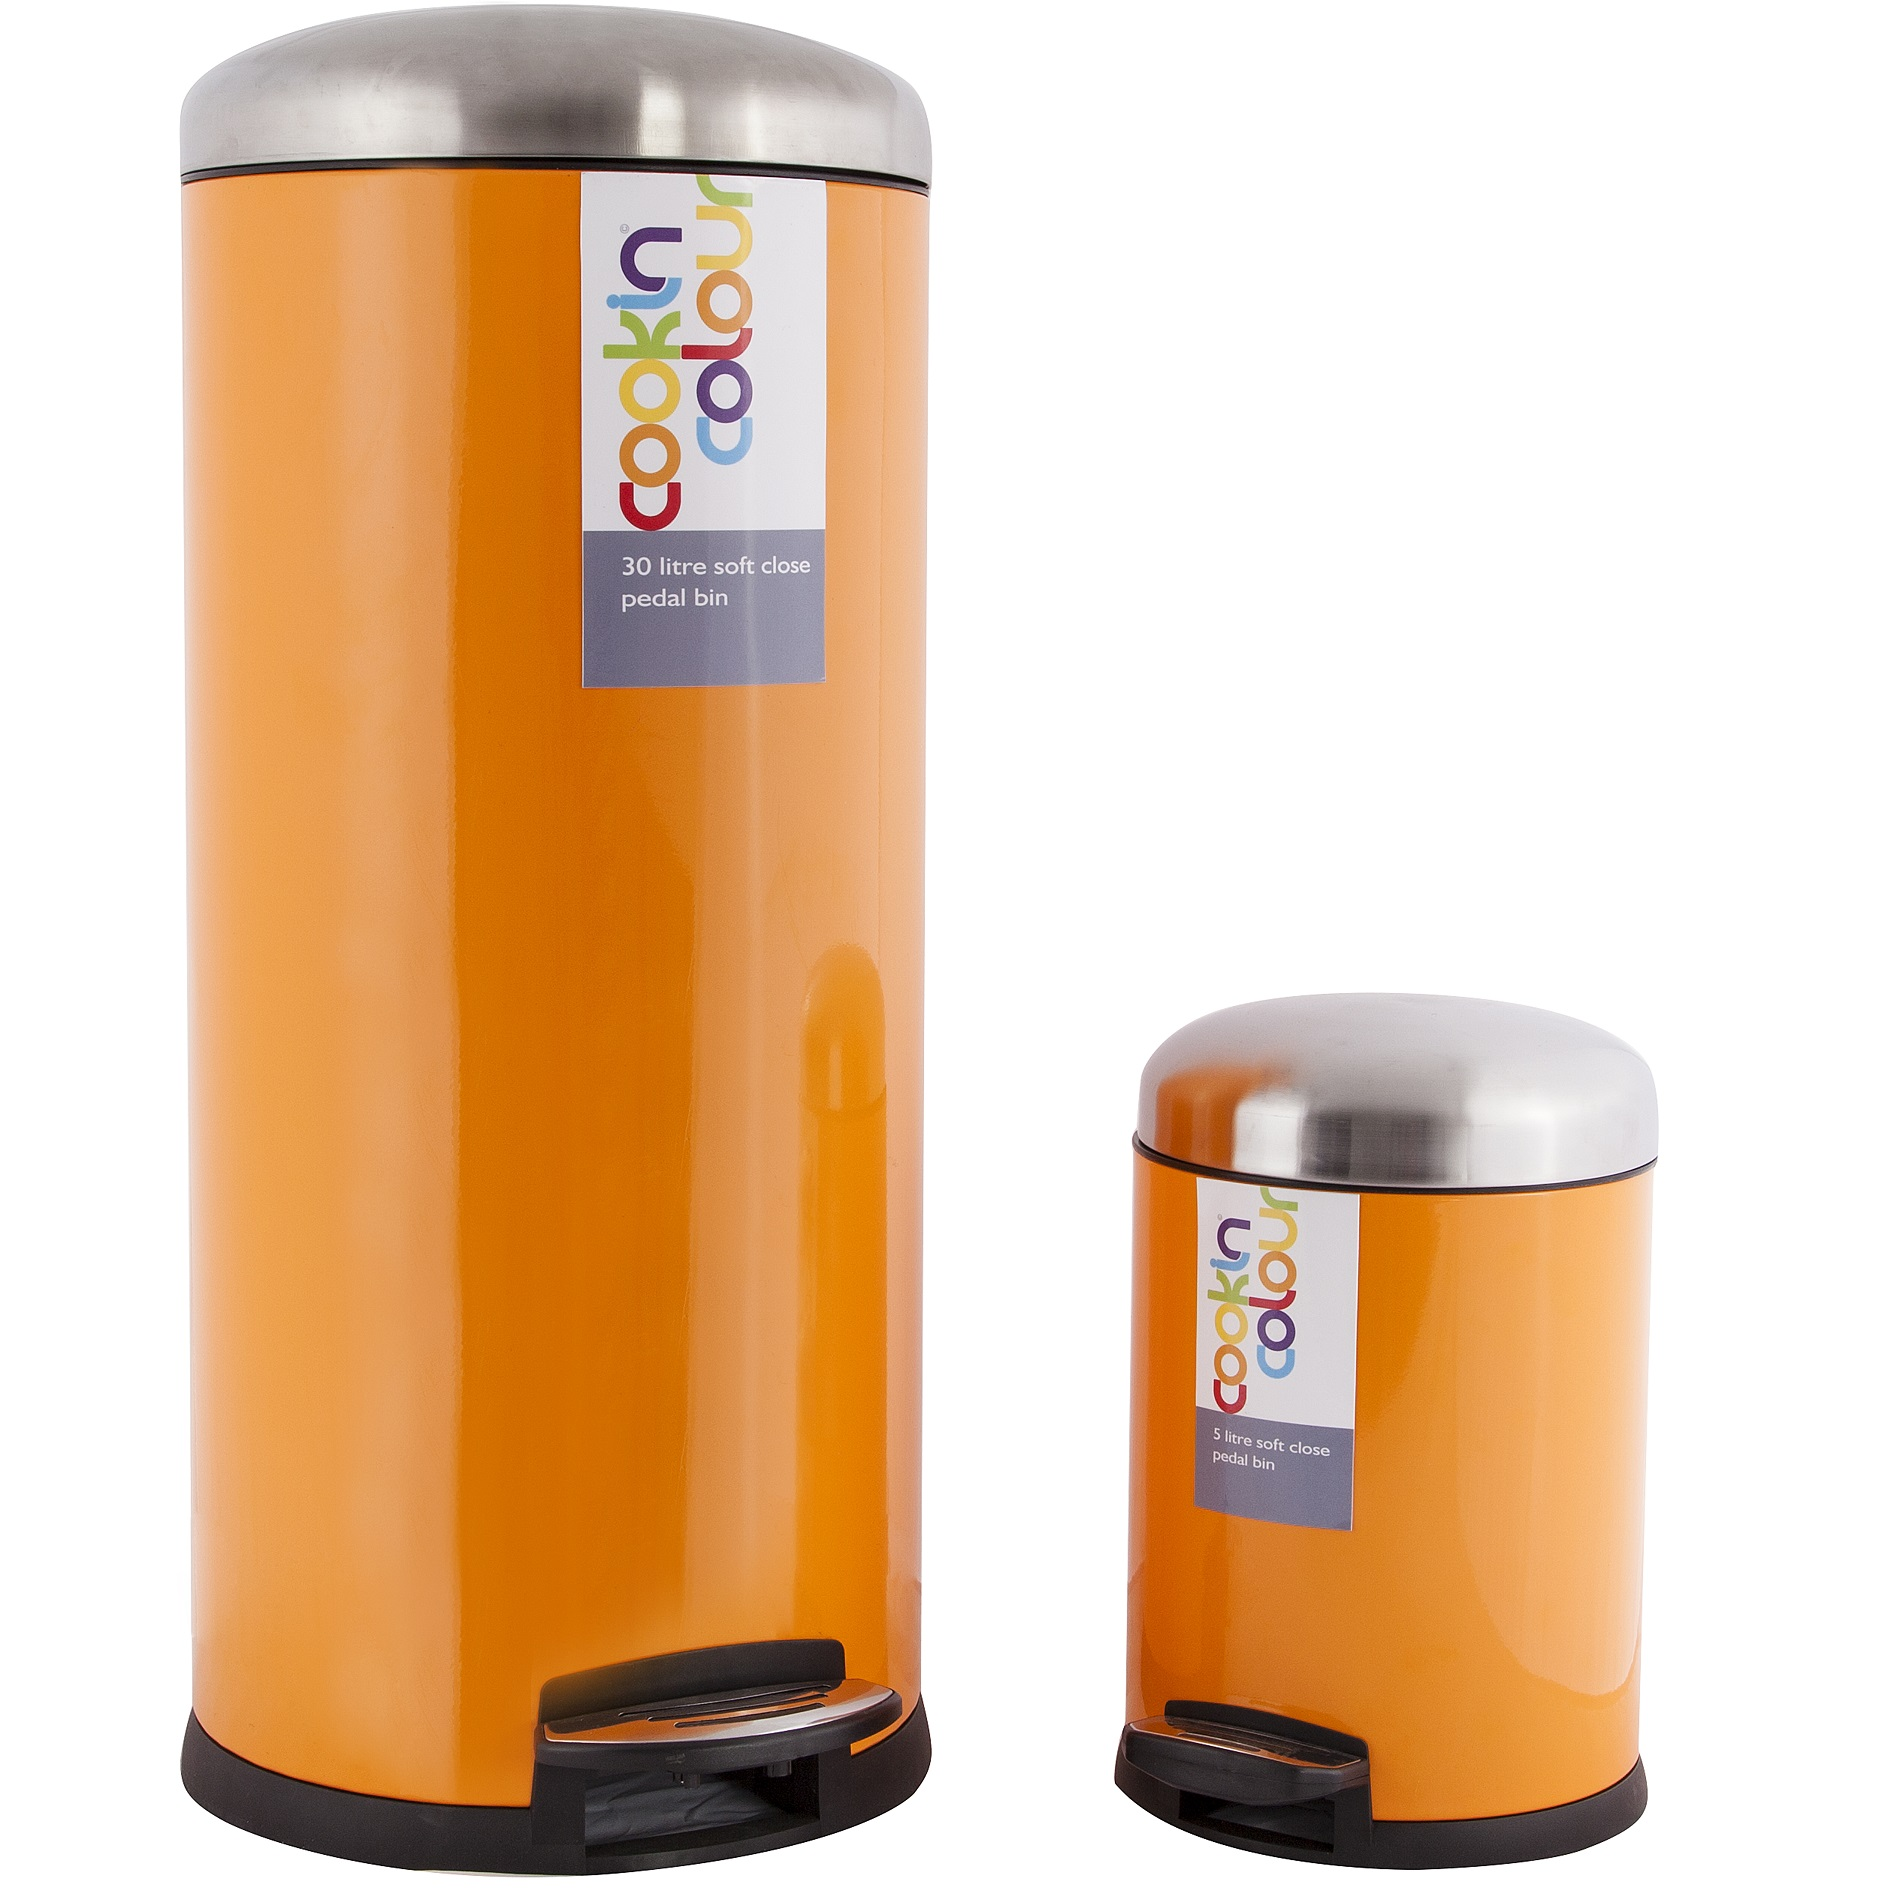 Kitchen Waste Bins: NEW COOKIN COLOUR SET OF TWO 30L 5L SOFT CLOSE KITCHEN